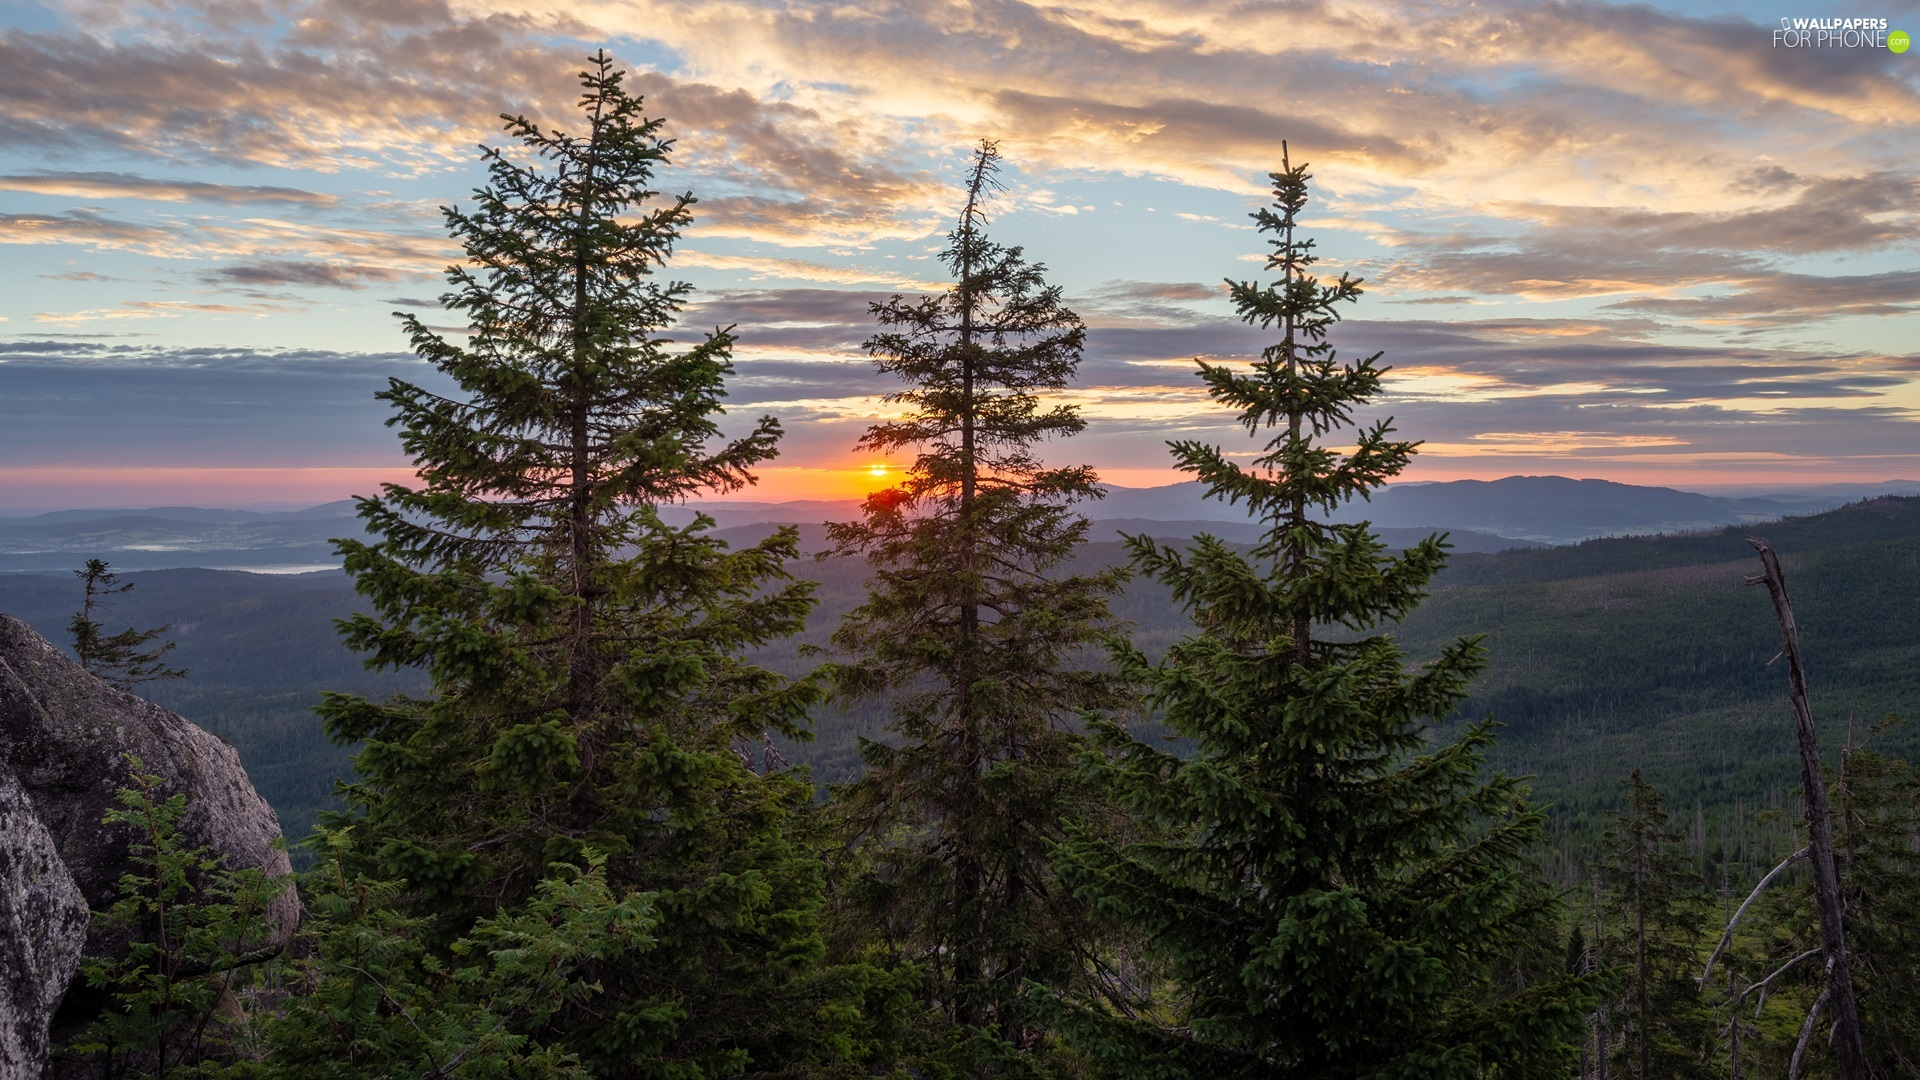 trees, viewes, clouds, Spruces, Great Sunsets, woods, Mountains, rocks